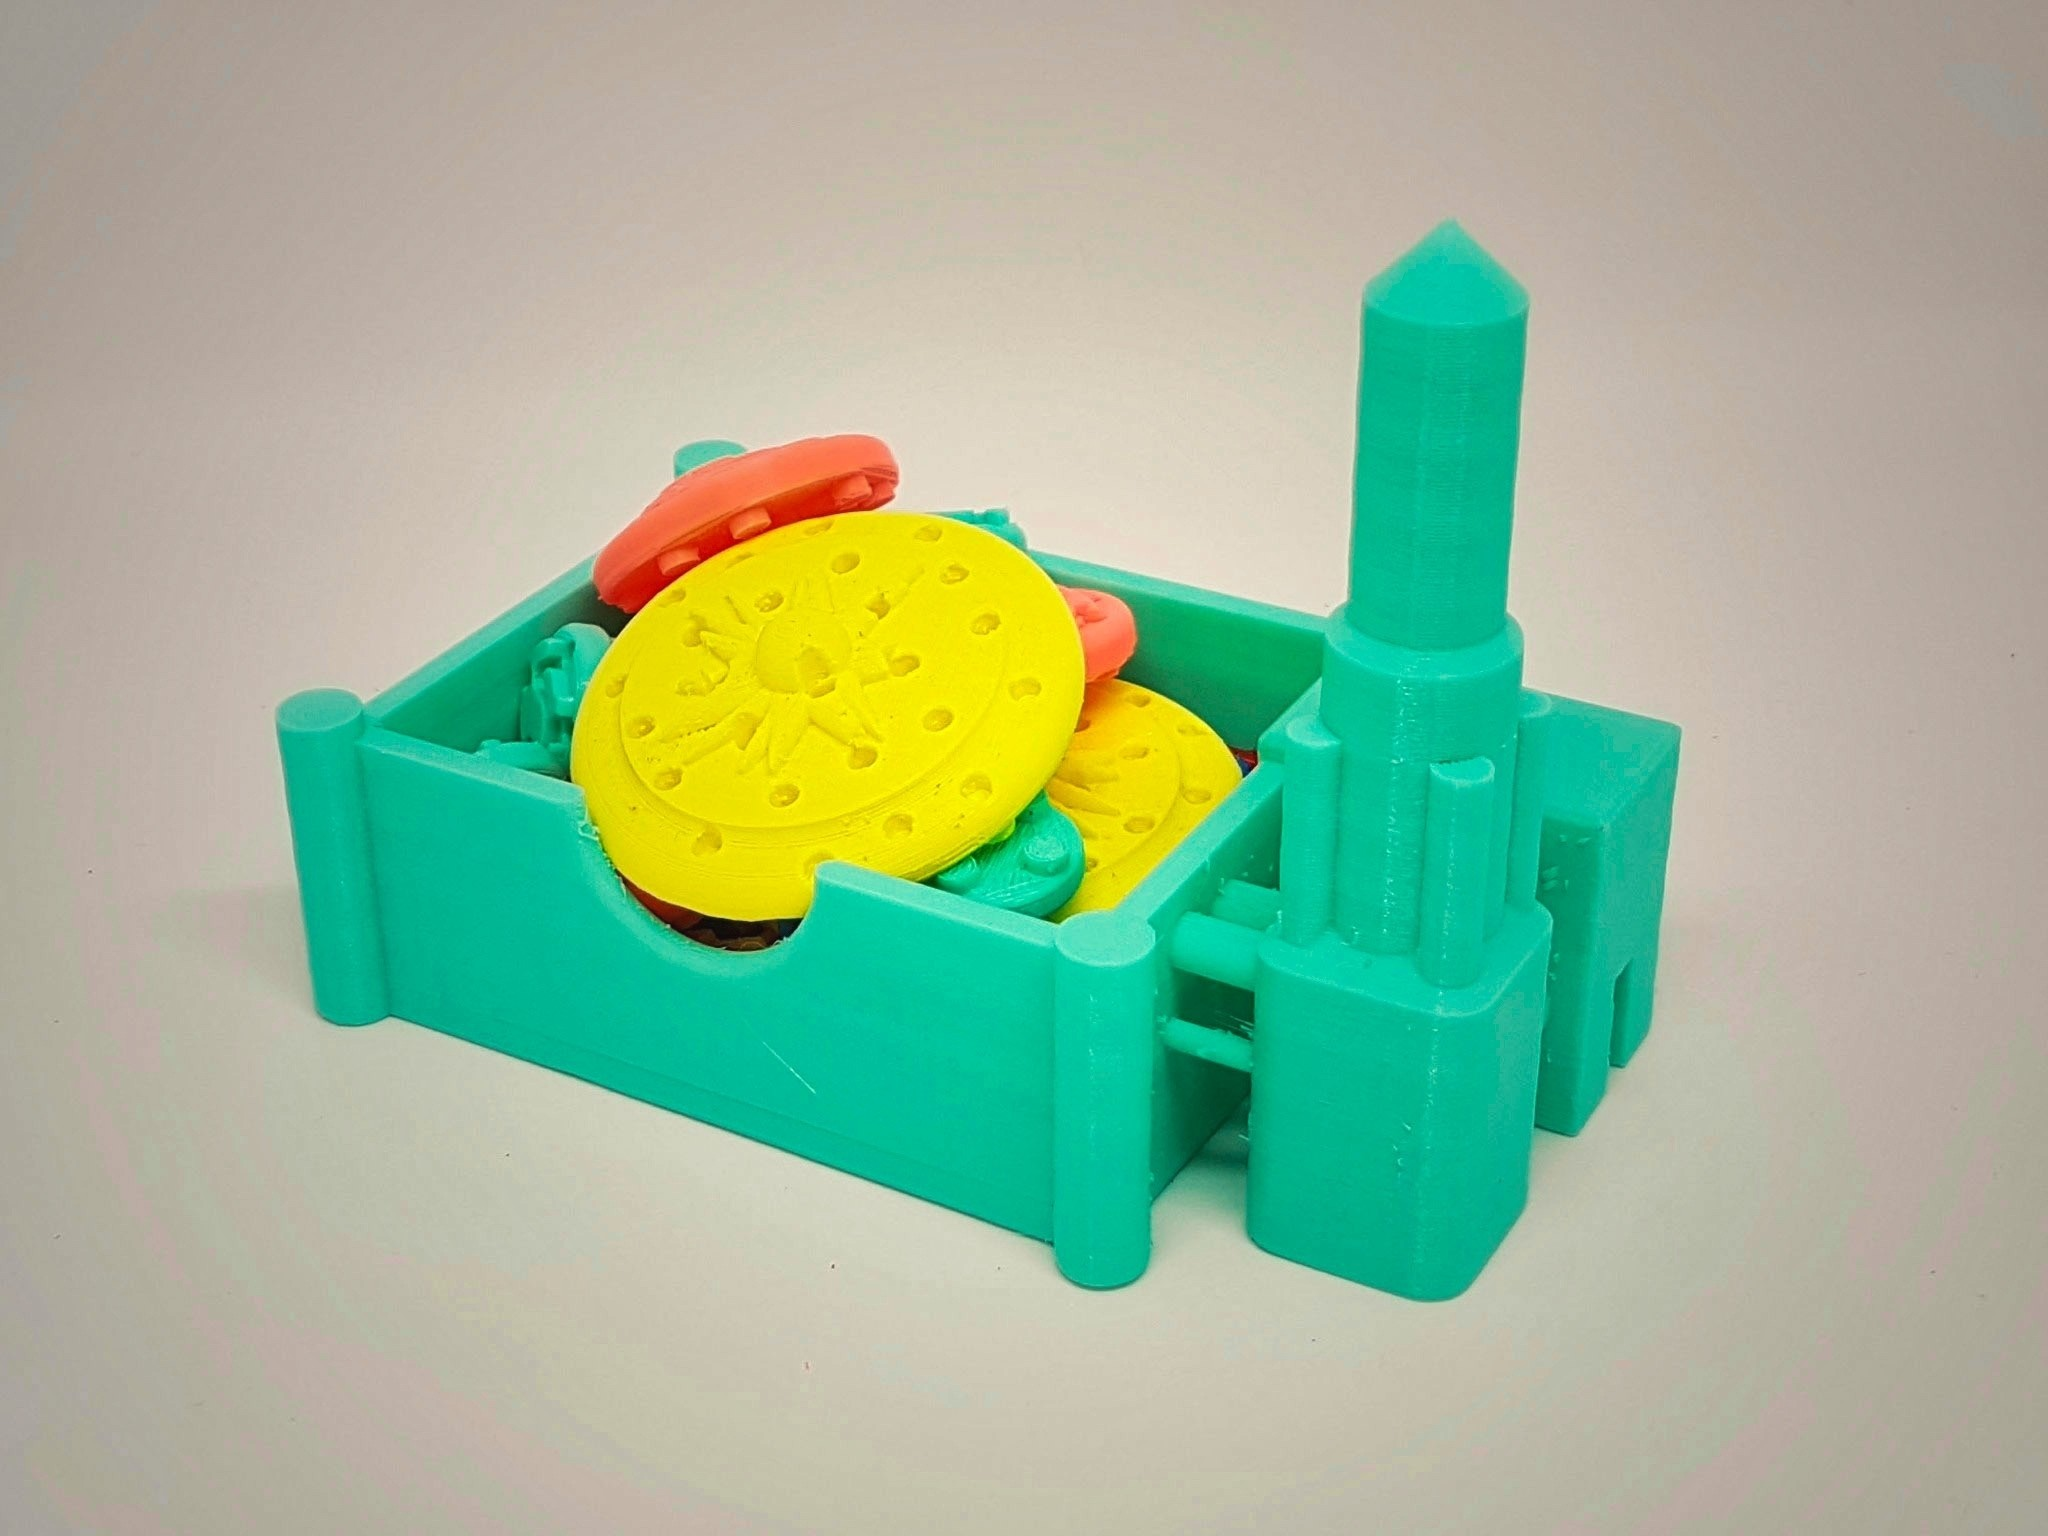 Launch_Site_5a_OK.jpg Download free STL file Find My Planets - Guessing Game (Battleship style) • 3D printer object, Relicae